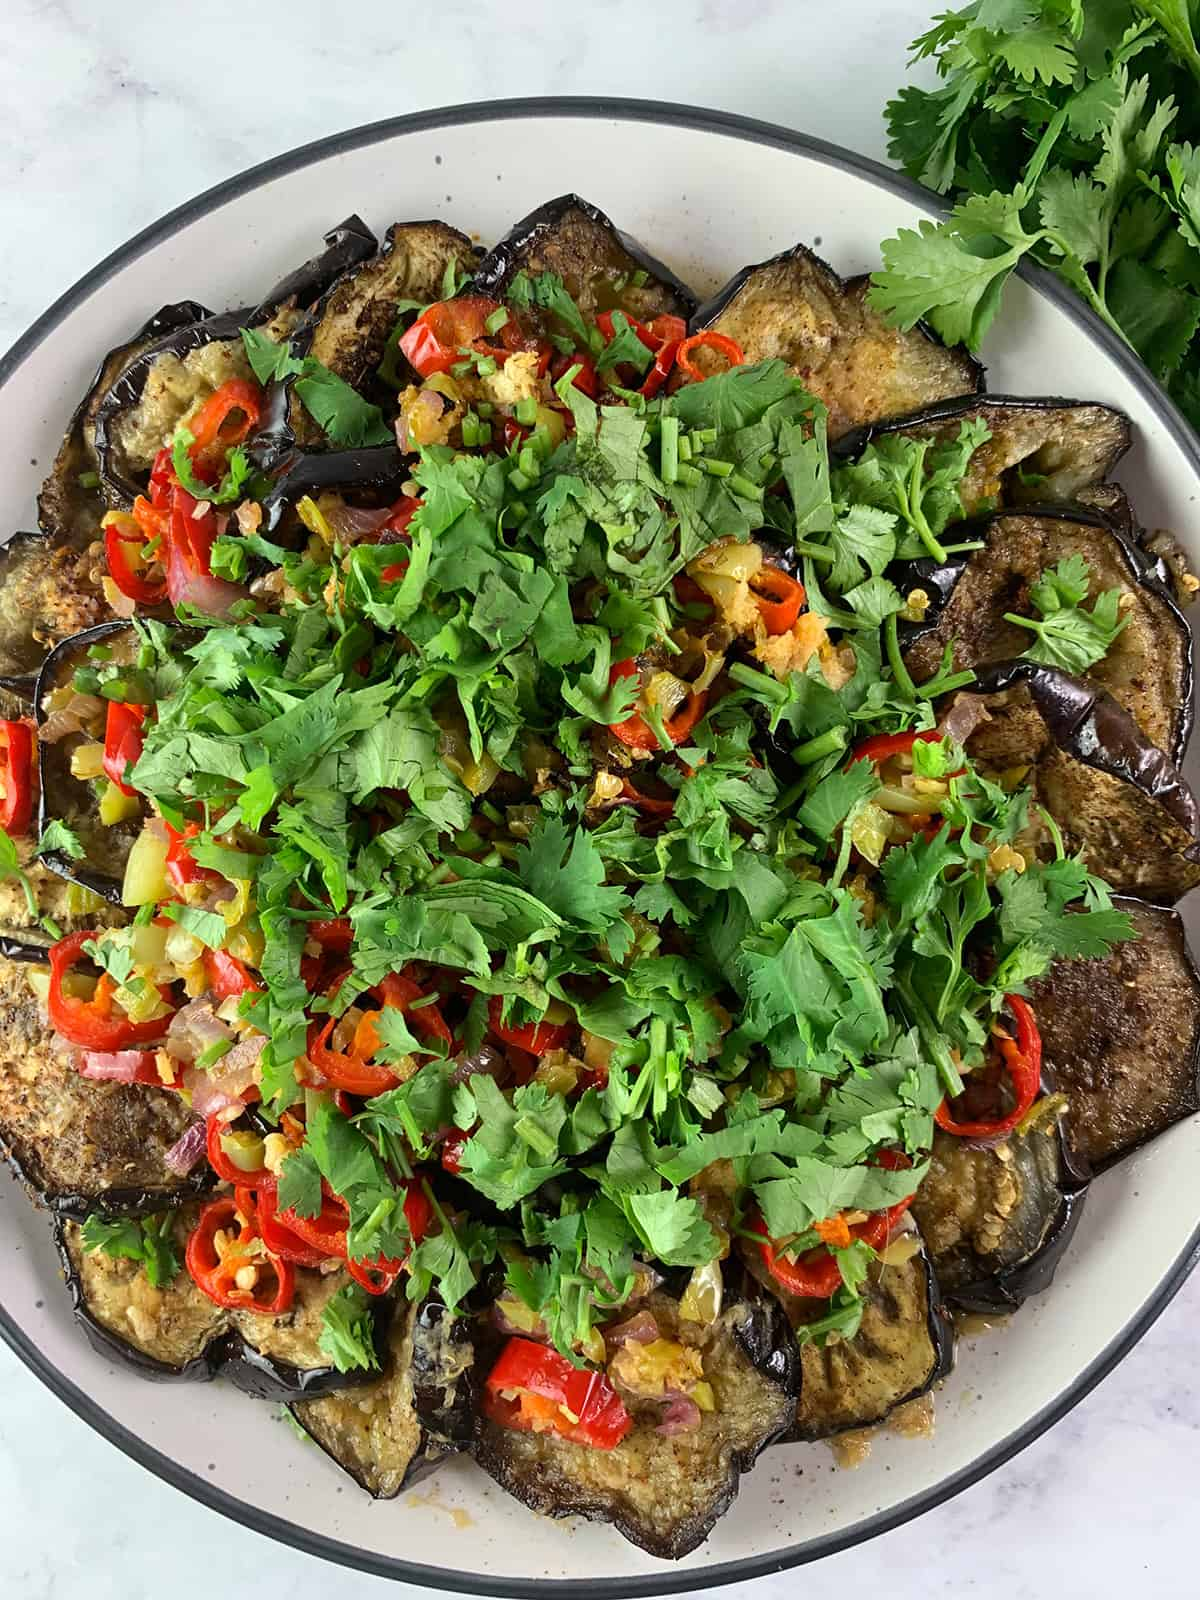 CHINESE EGGPLANT SALAD IN PORTRAIT